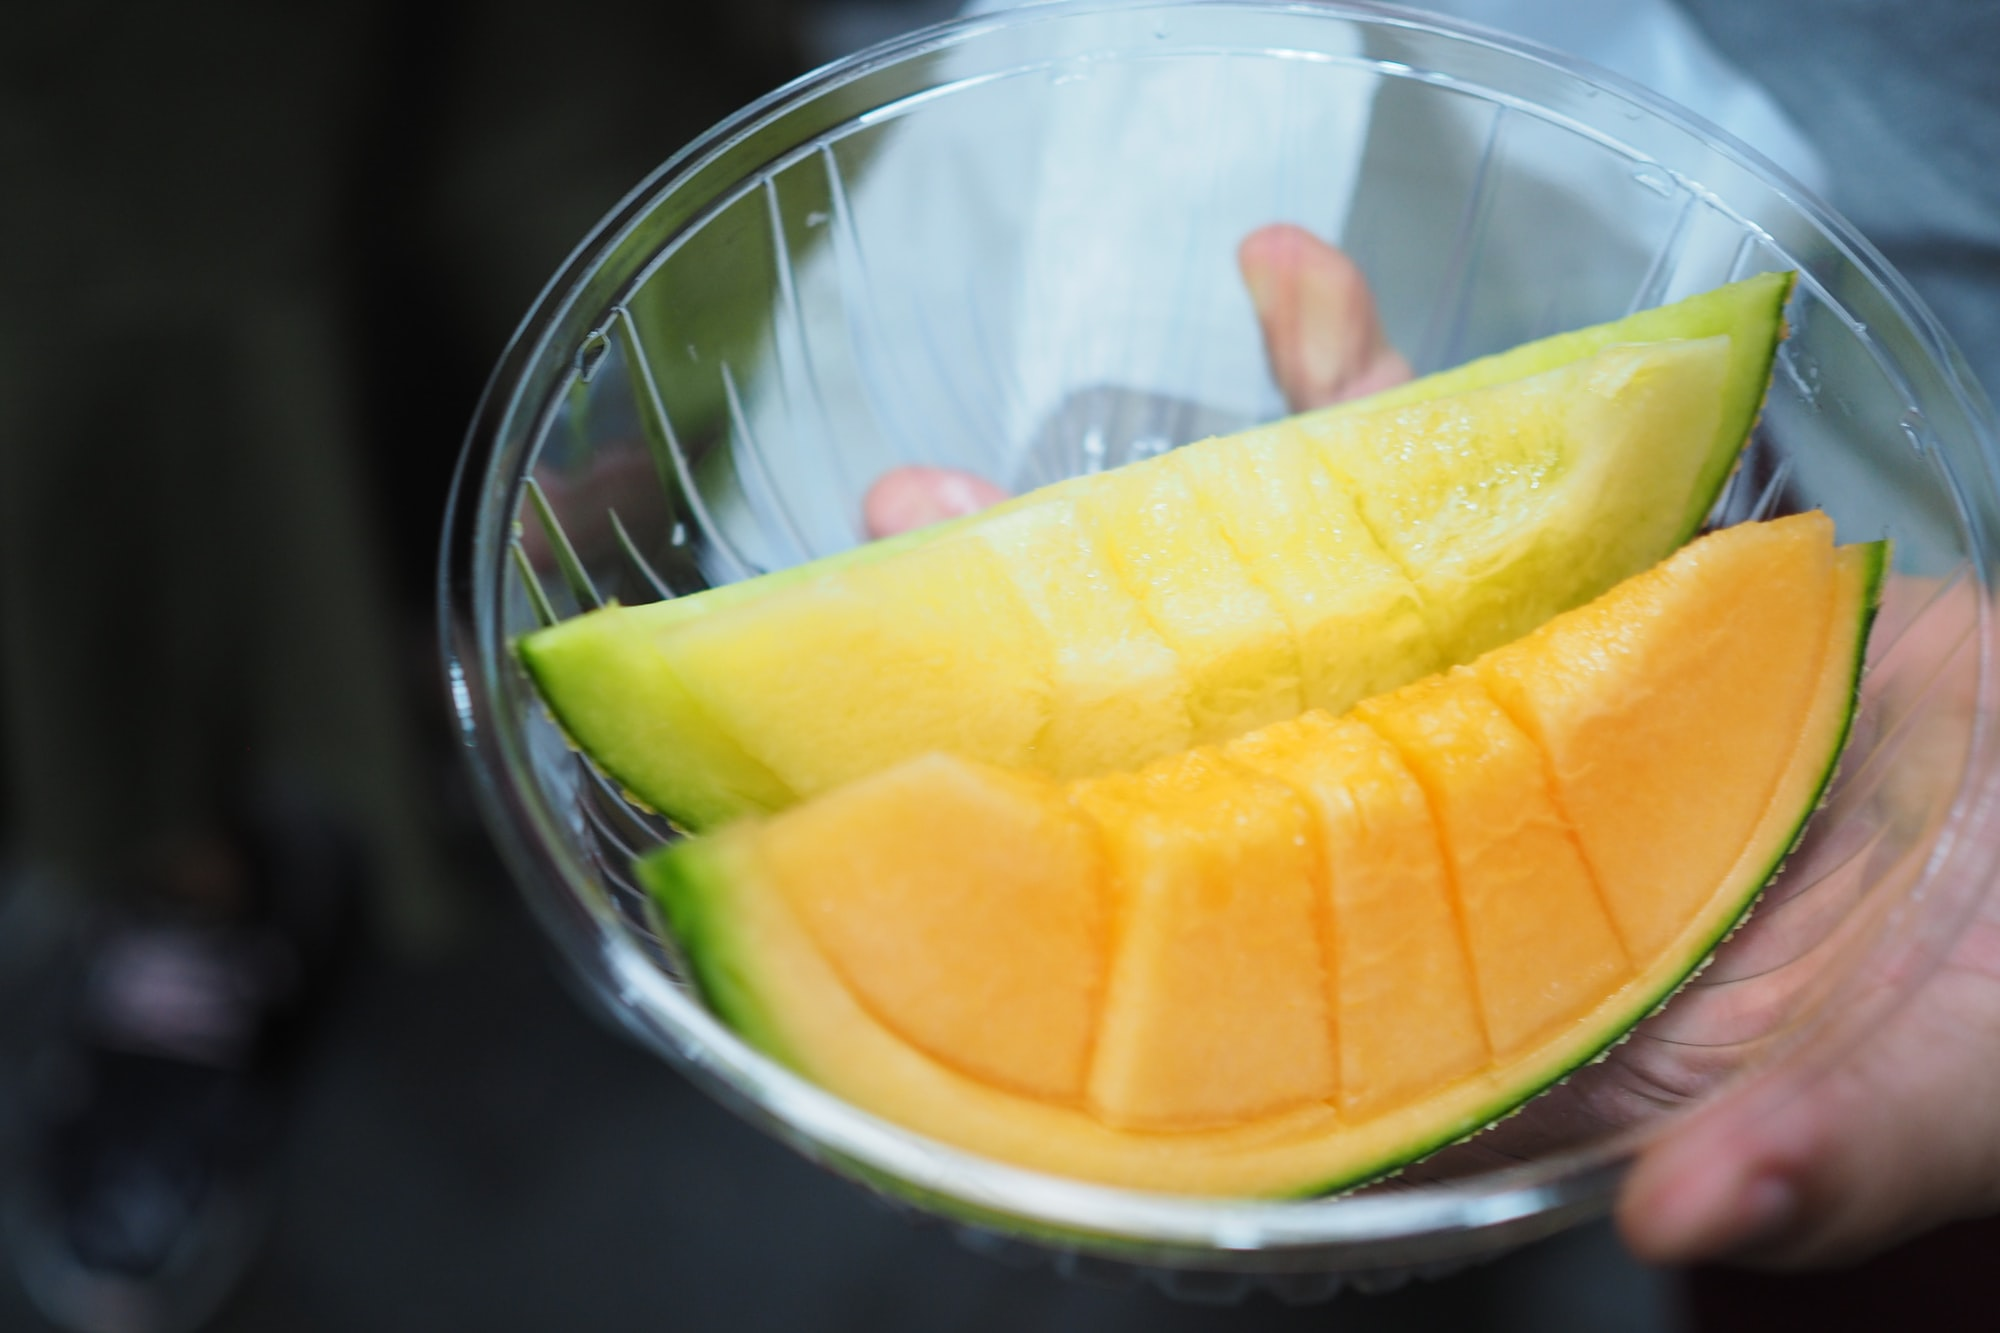 My family travel in JP,we taste sweet melon together